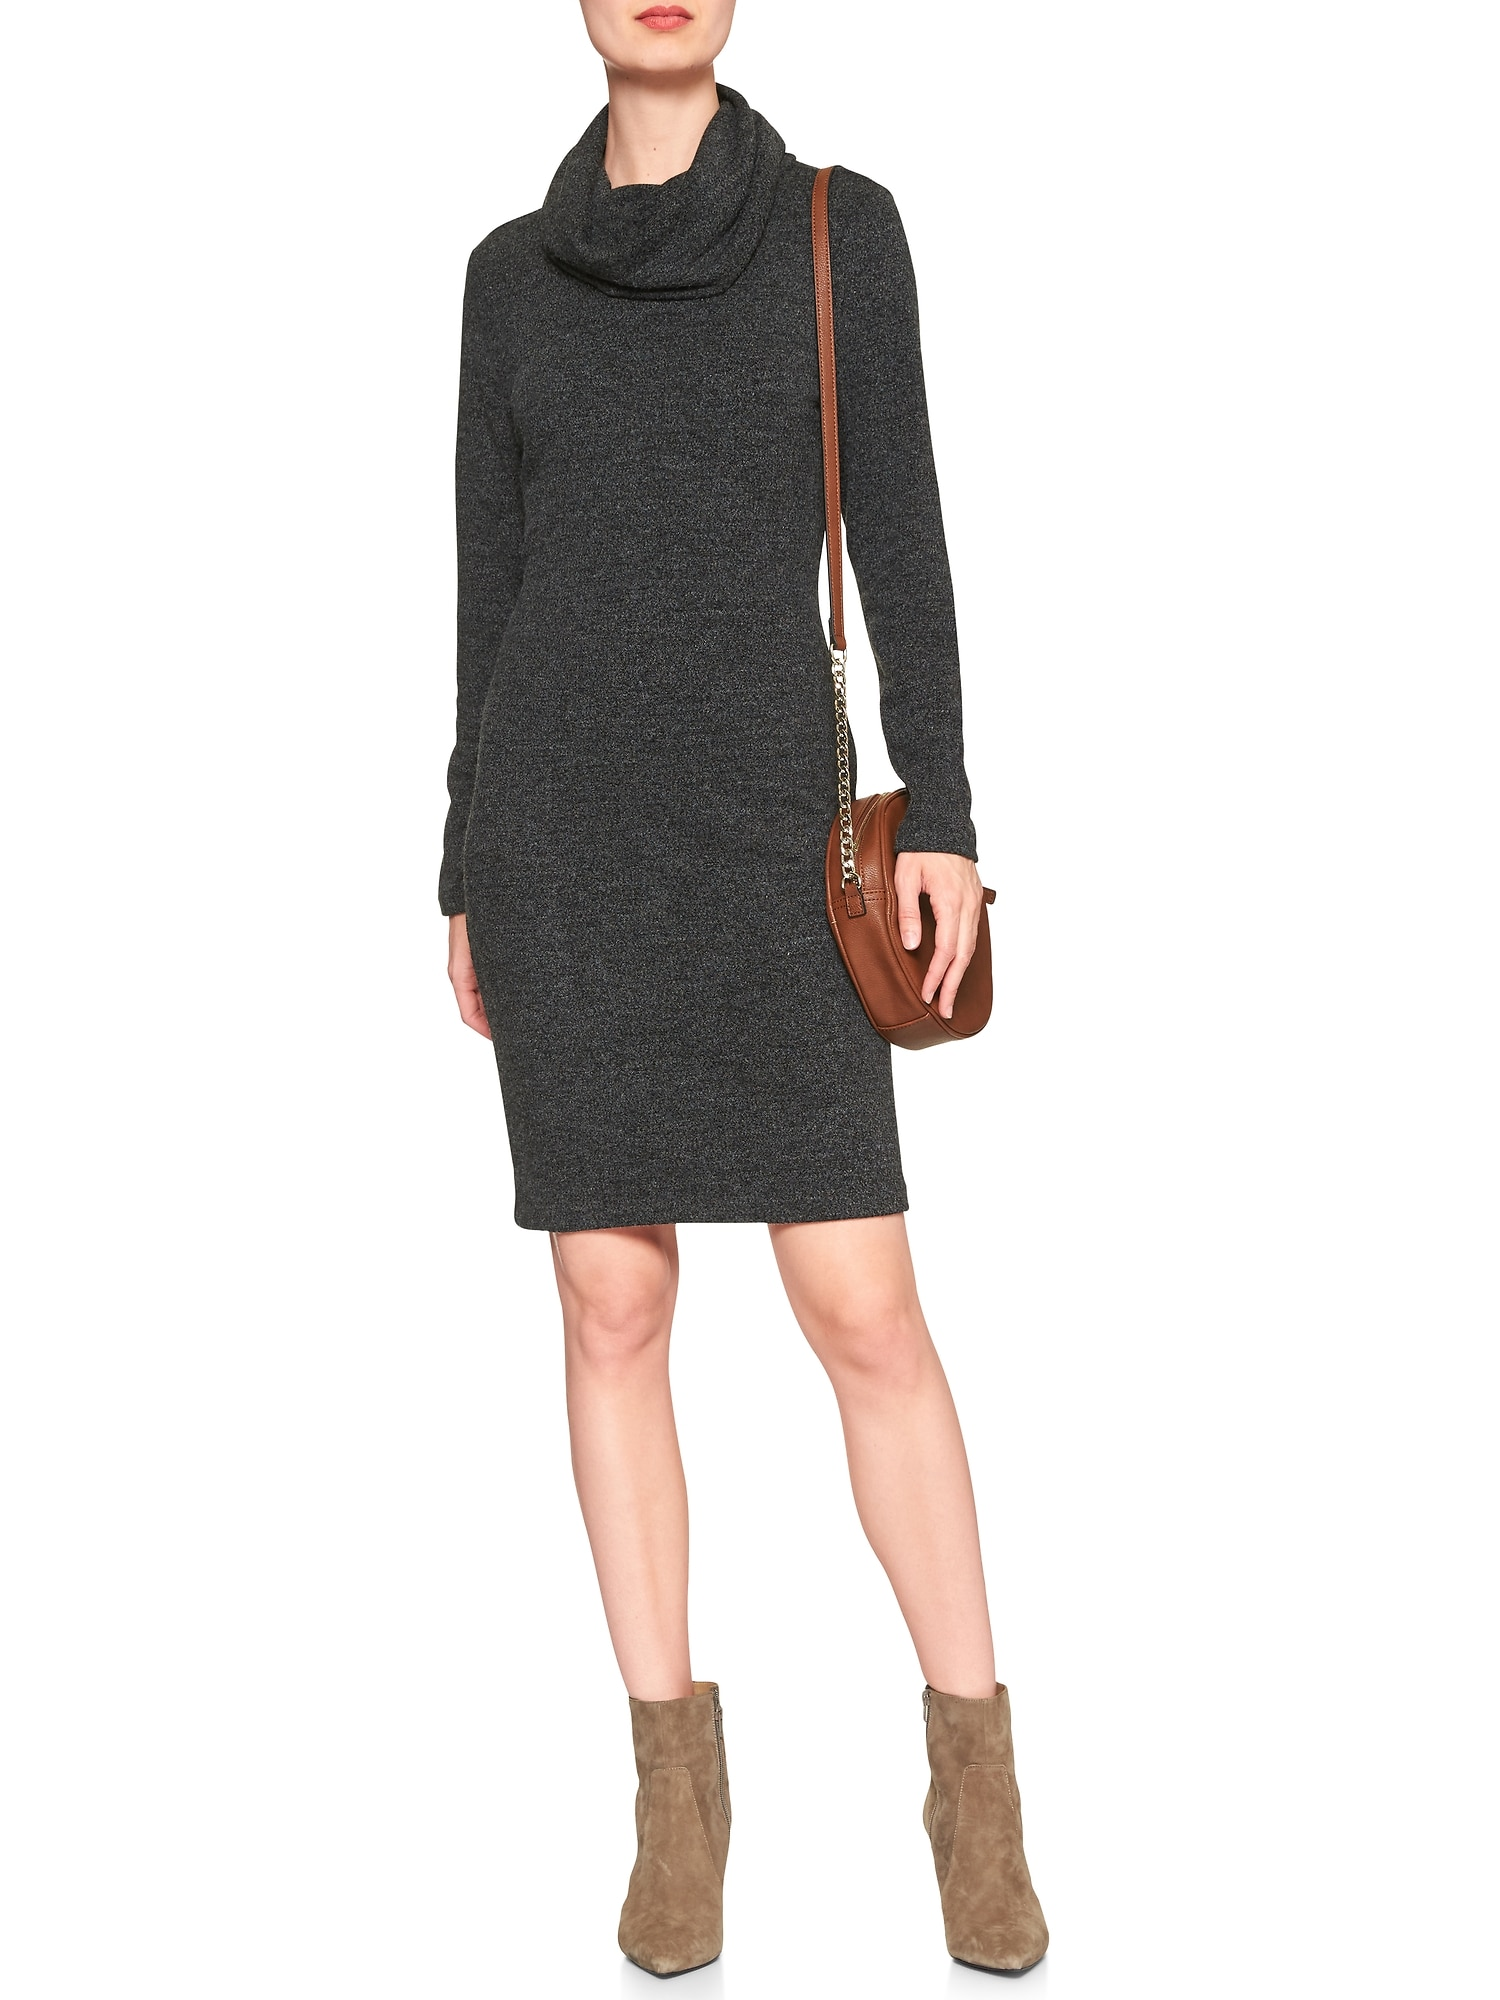 Marled Cowl Turtleneck Dress | Banana Republic Factory